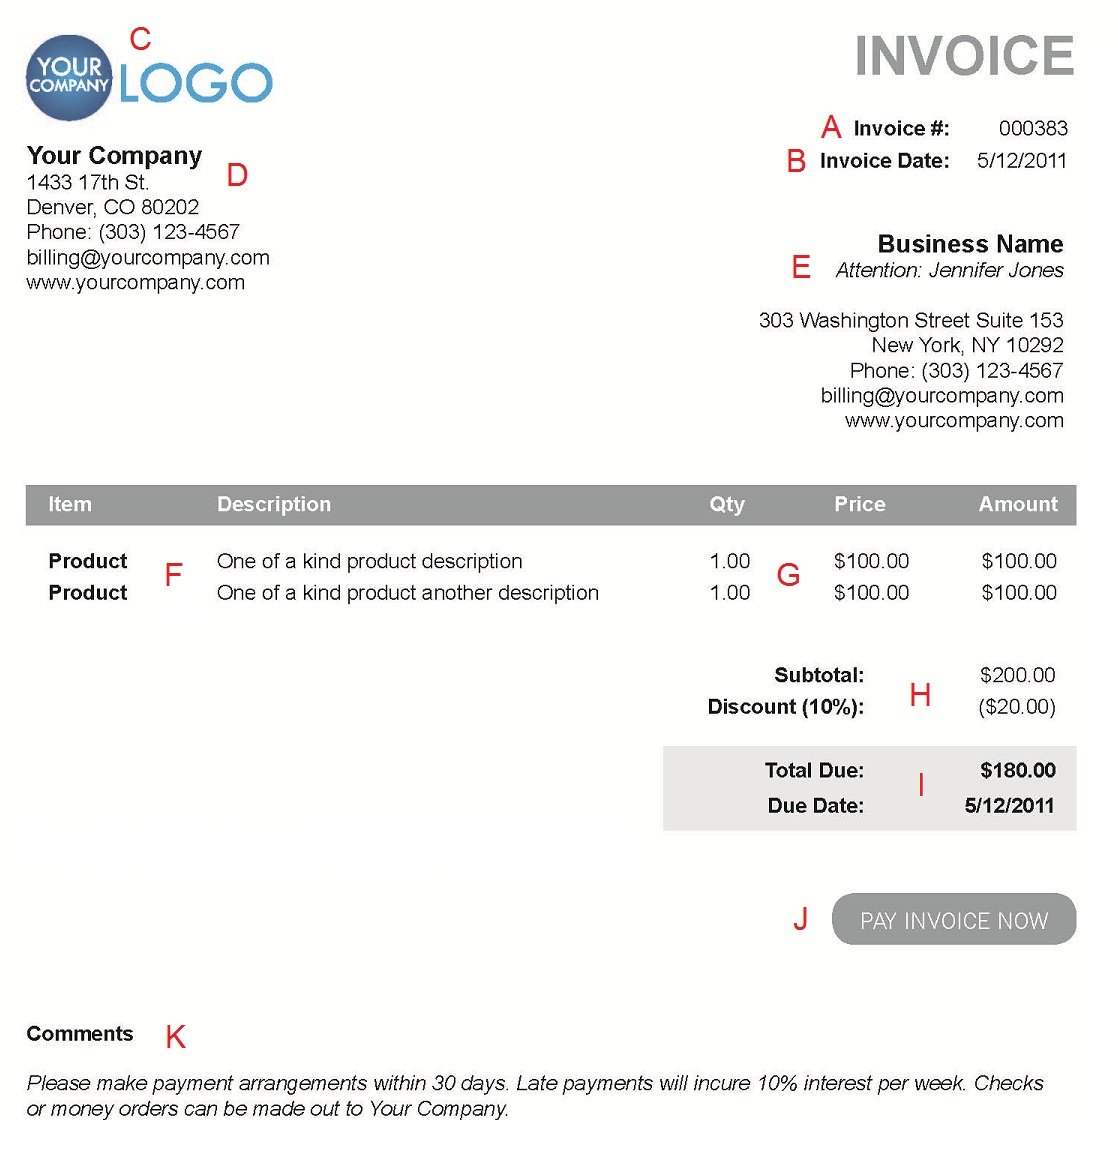 Aaaaeroincus  Terrific The  Different Sections Of An Electronic Payment Invoice With Lovable A  With Adorable Delivery Receipt Email Also Cake Receipt In Addition Walmart Policy On Returns Without Receipt And Taxi Receipt Image As Well As Rent Receipts Templates Additionally Deposit Receipts From Paysimplecom With Aaaaeroincus  Lovable The  Different Sections Of An Electronic Payment Invoice With Adorable A  And Terrific Delivery Receipt Email Also Cake Receipt In Addition Walmart Policy On Returns Without Receipt From Paysimplecom